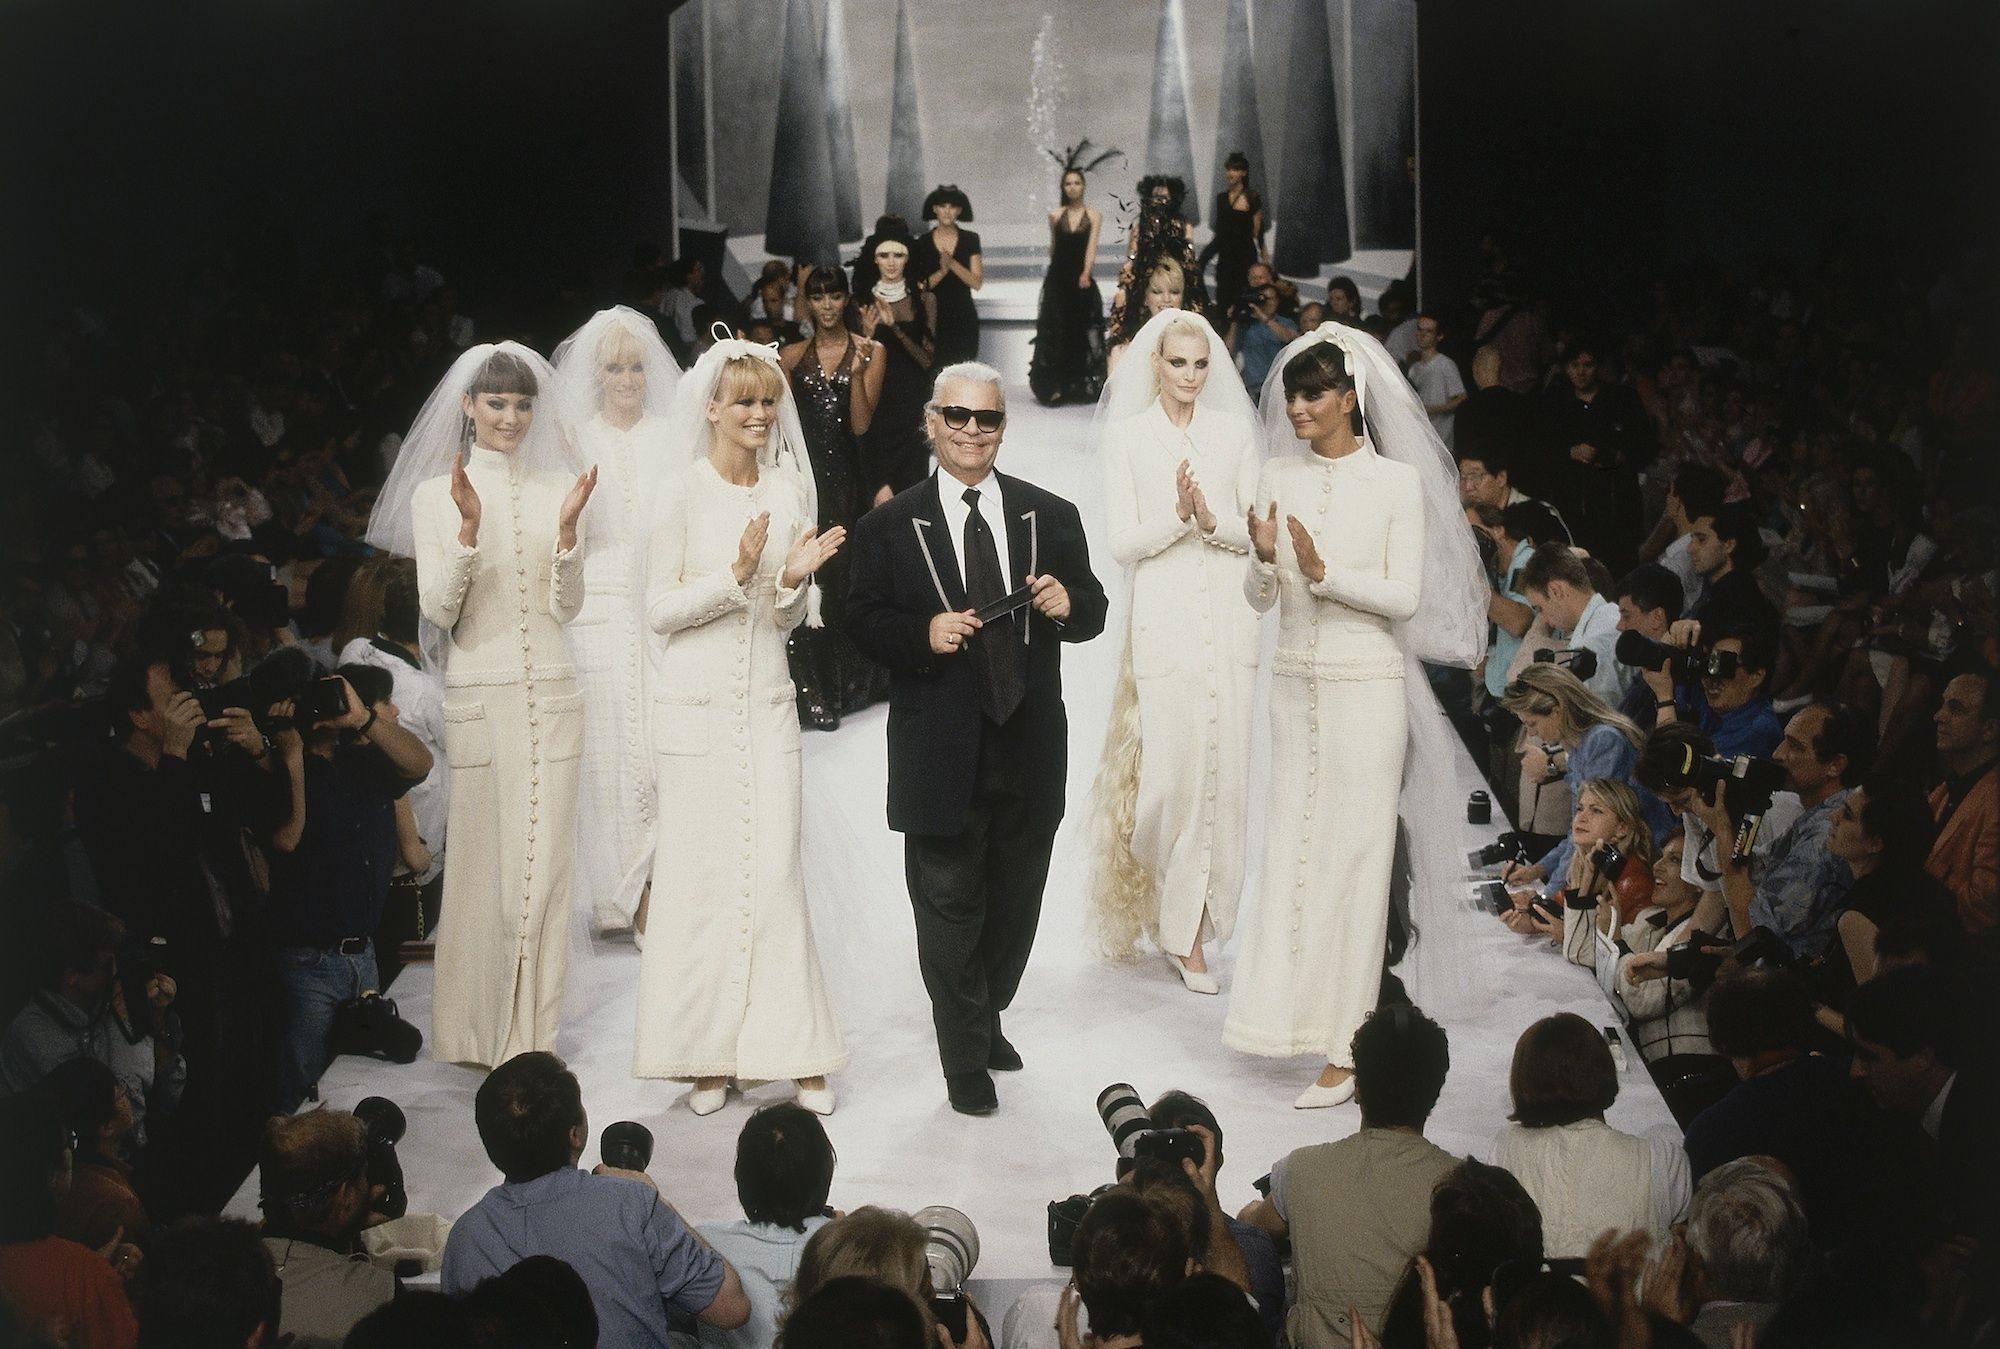 Everyone's favorite Uncle Karl surrounded by Chanel brides.